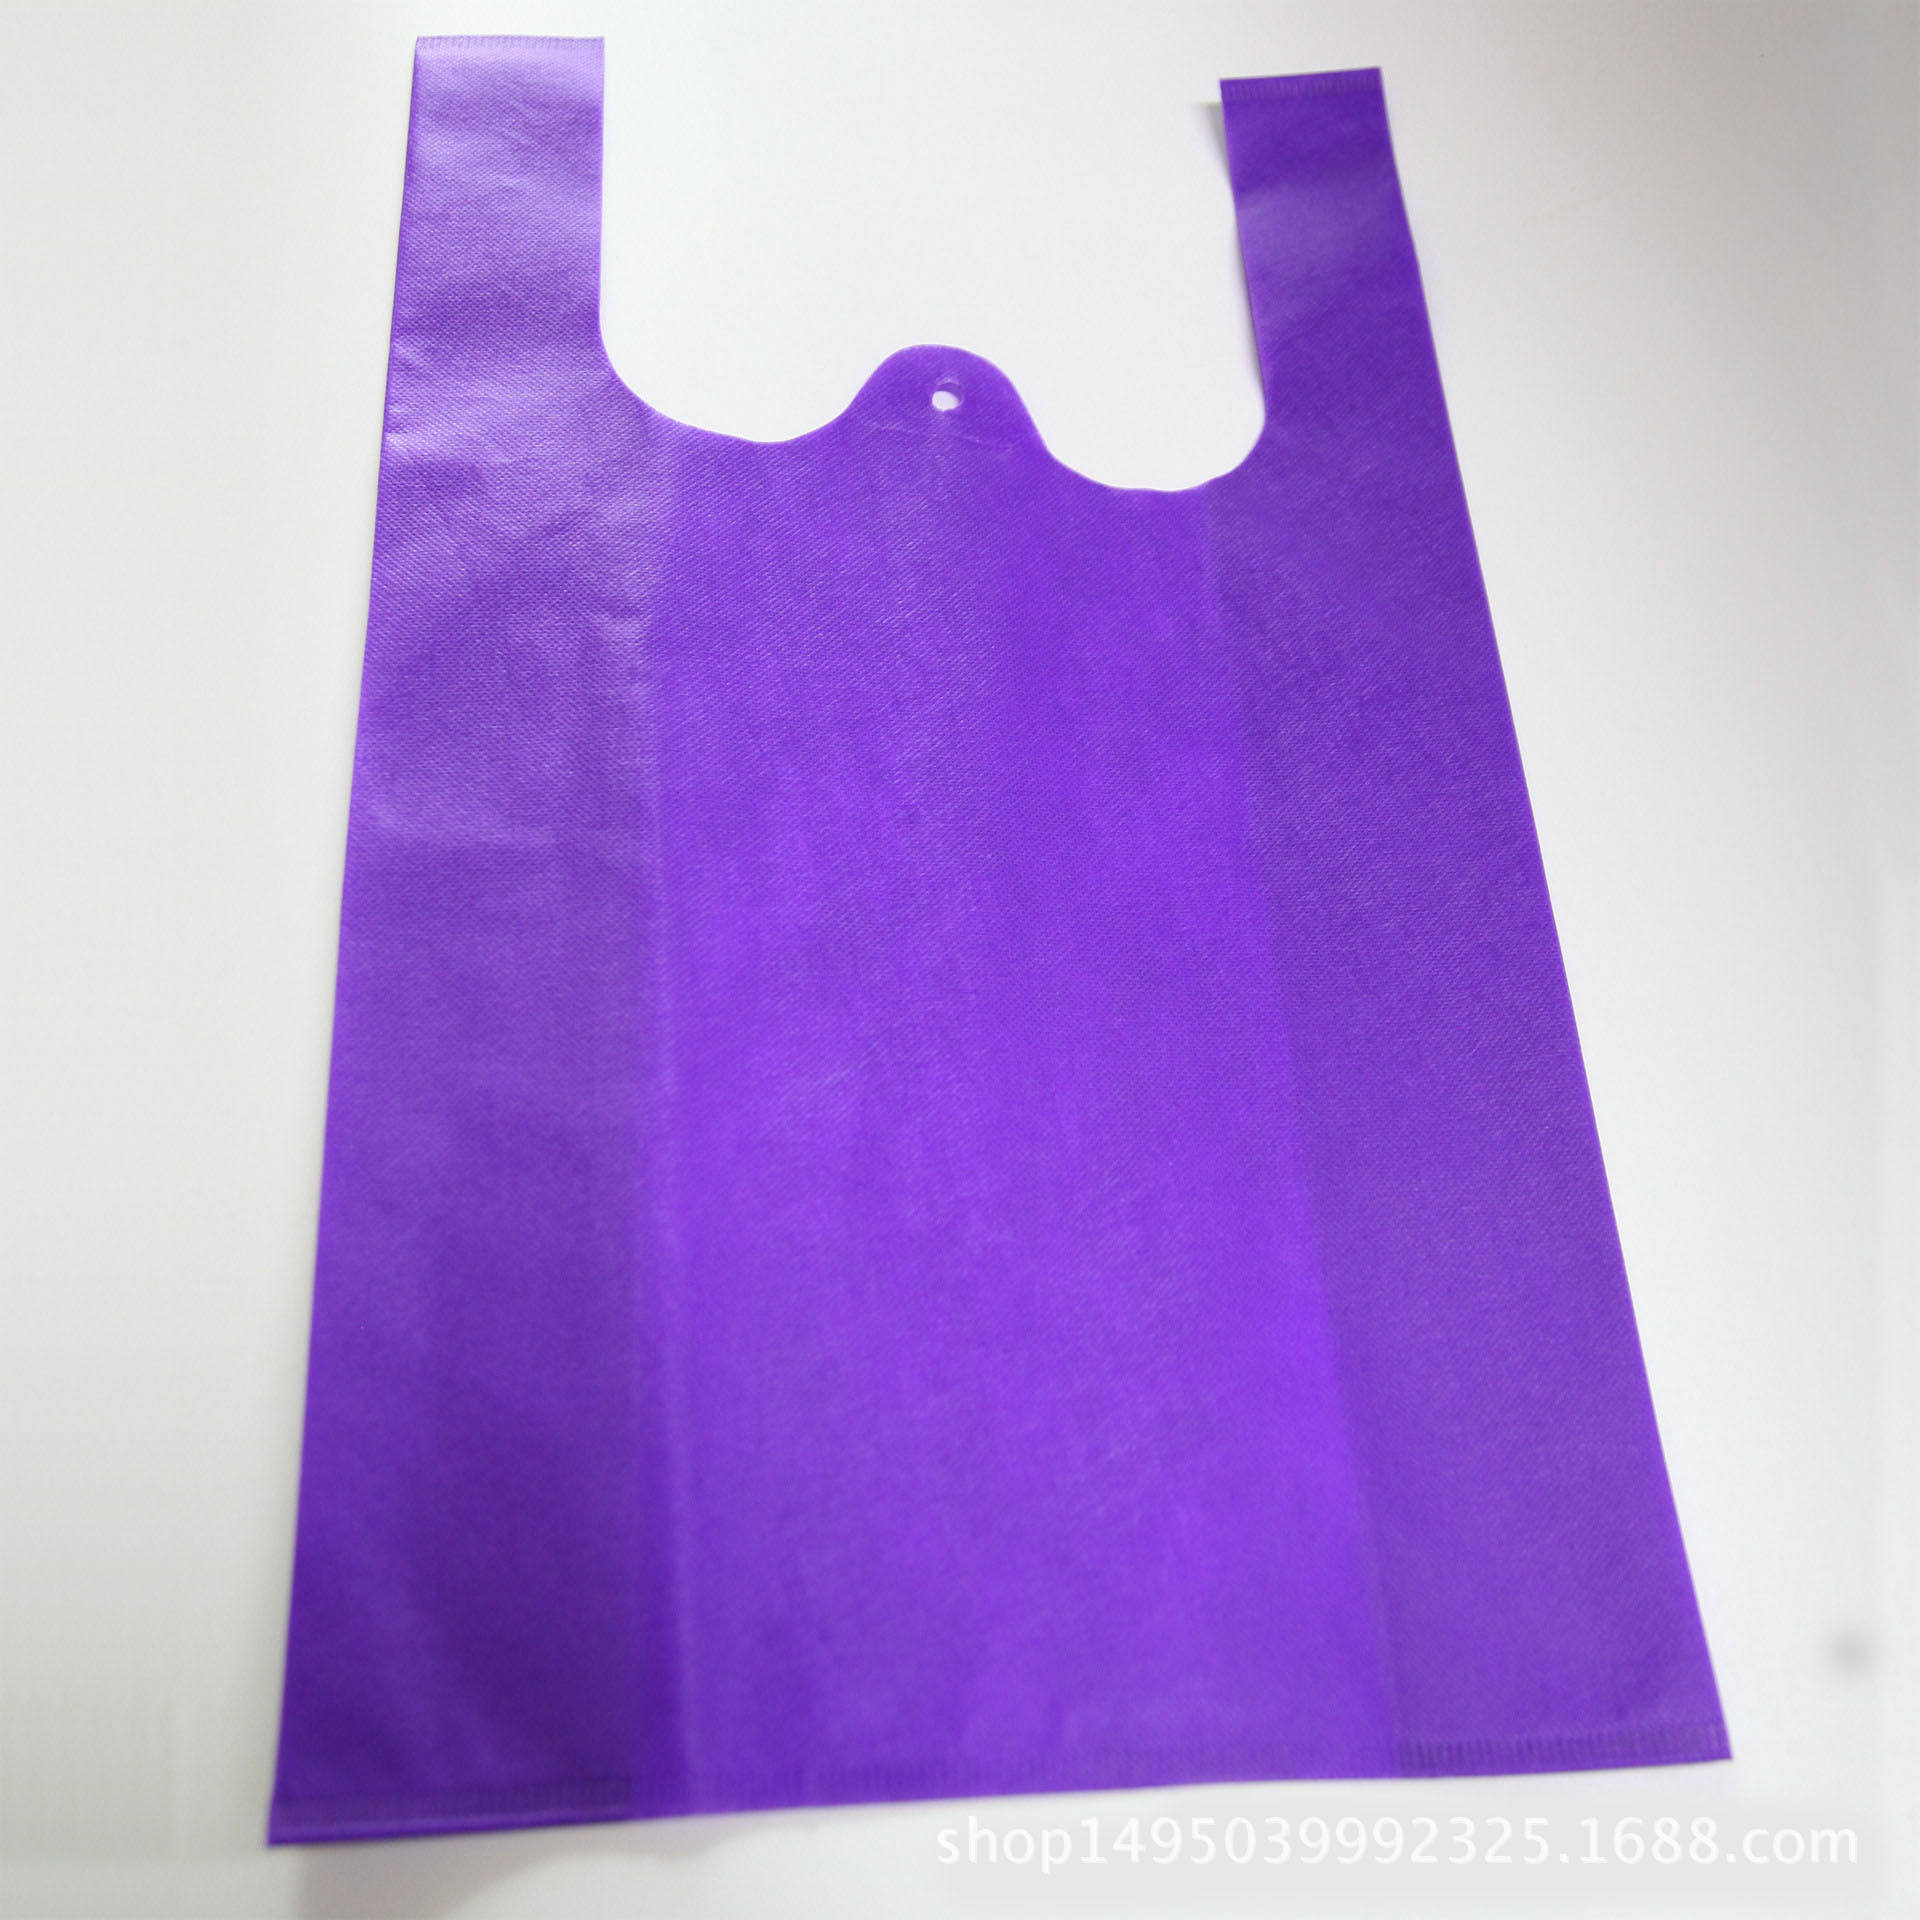 Custom Heavy duty bags eco friendly non woven carrier tote t shirt bags for shopping